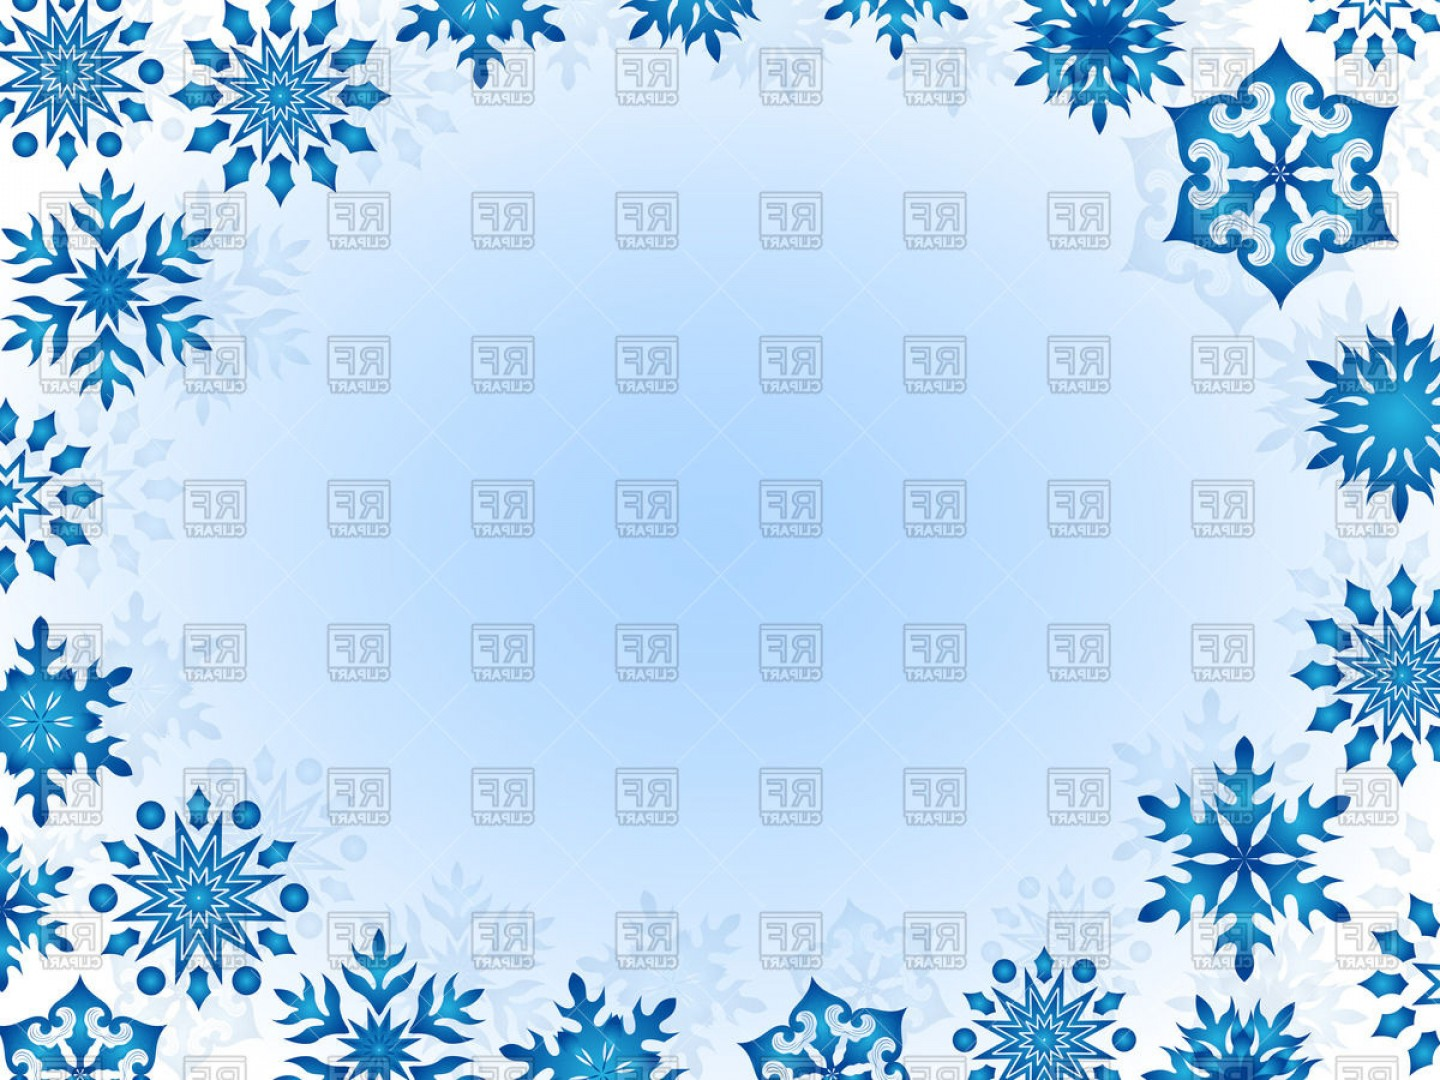 Snowflake Border Vector Art: Christmas Frame Of Blue Snowflakes On White Background Vector Clipart